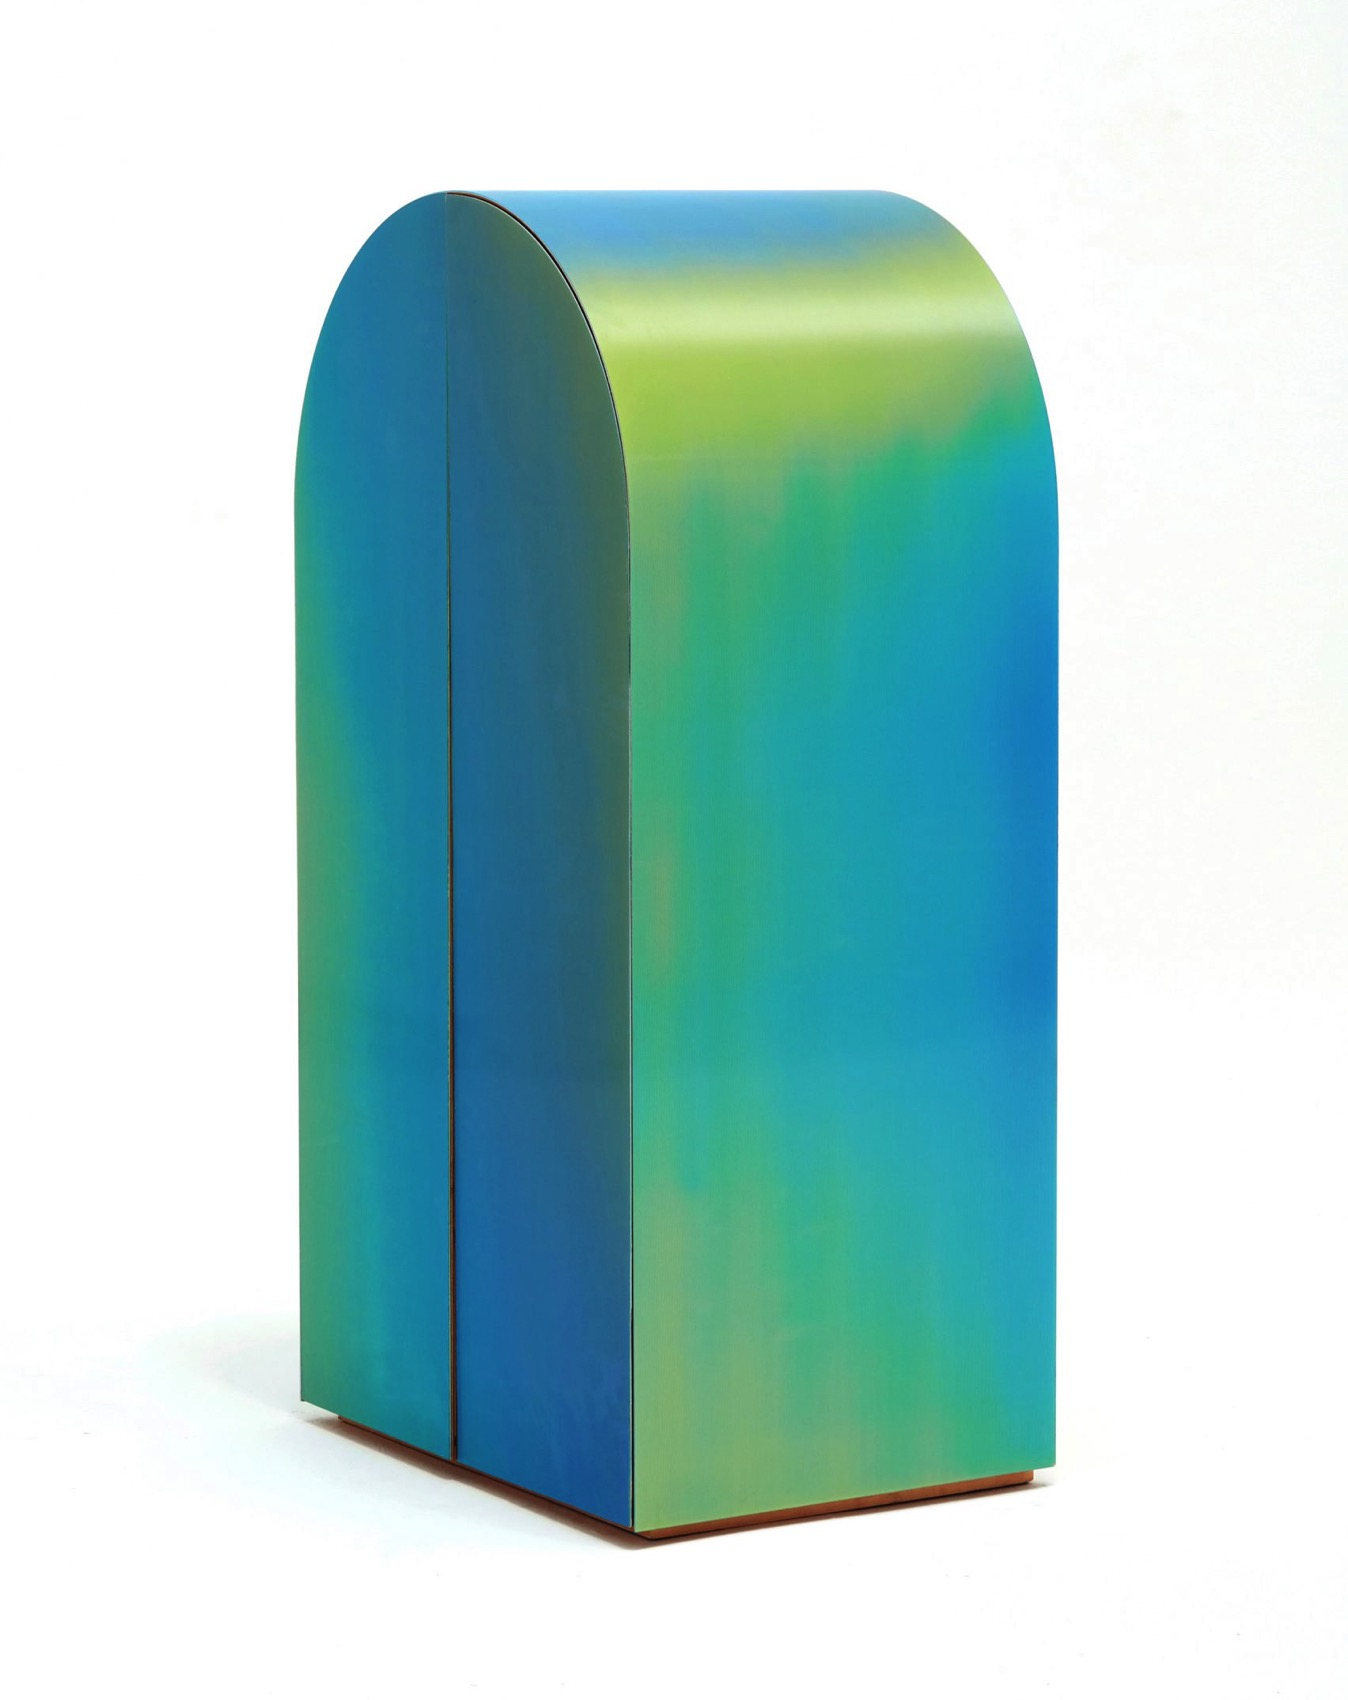 Color flow orijeen design dezeen 2364 col 5 1704x2148